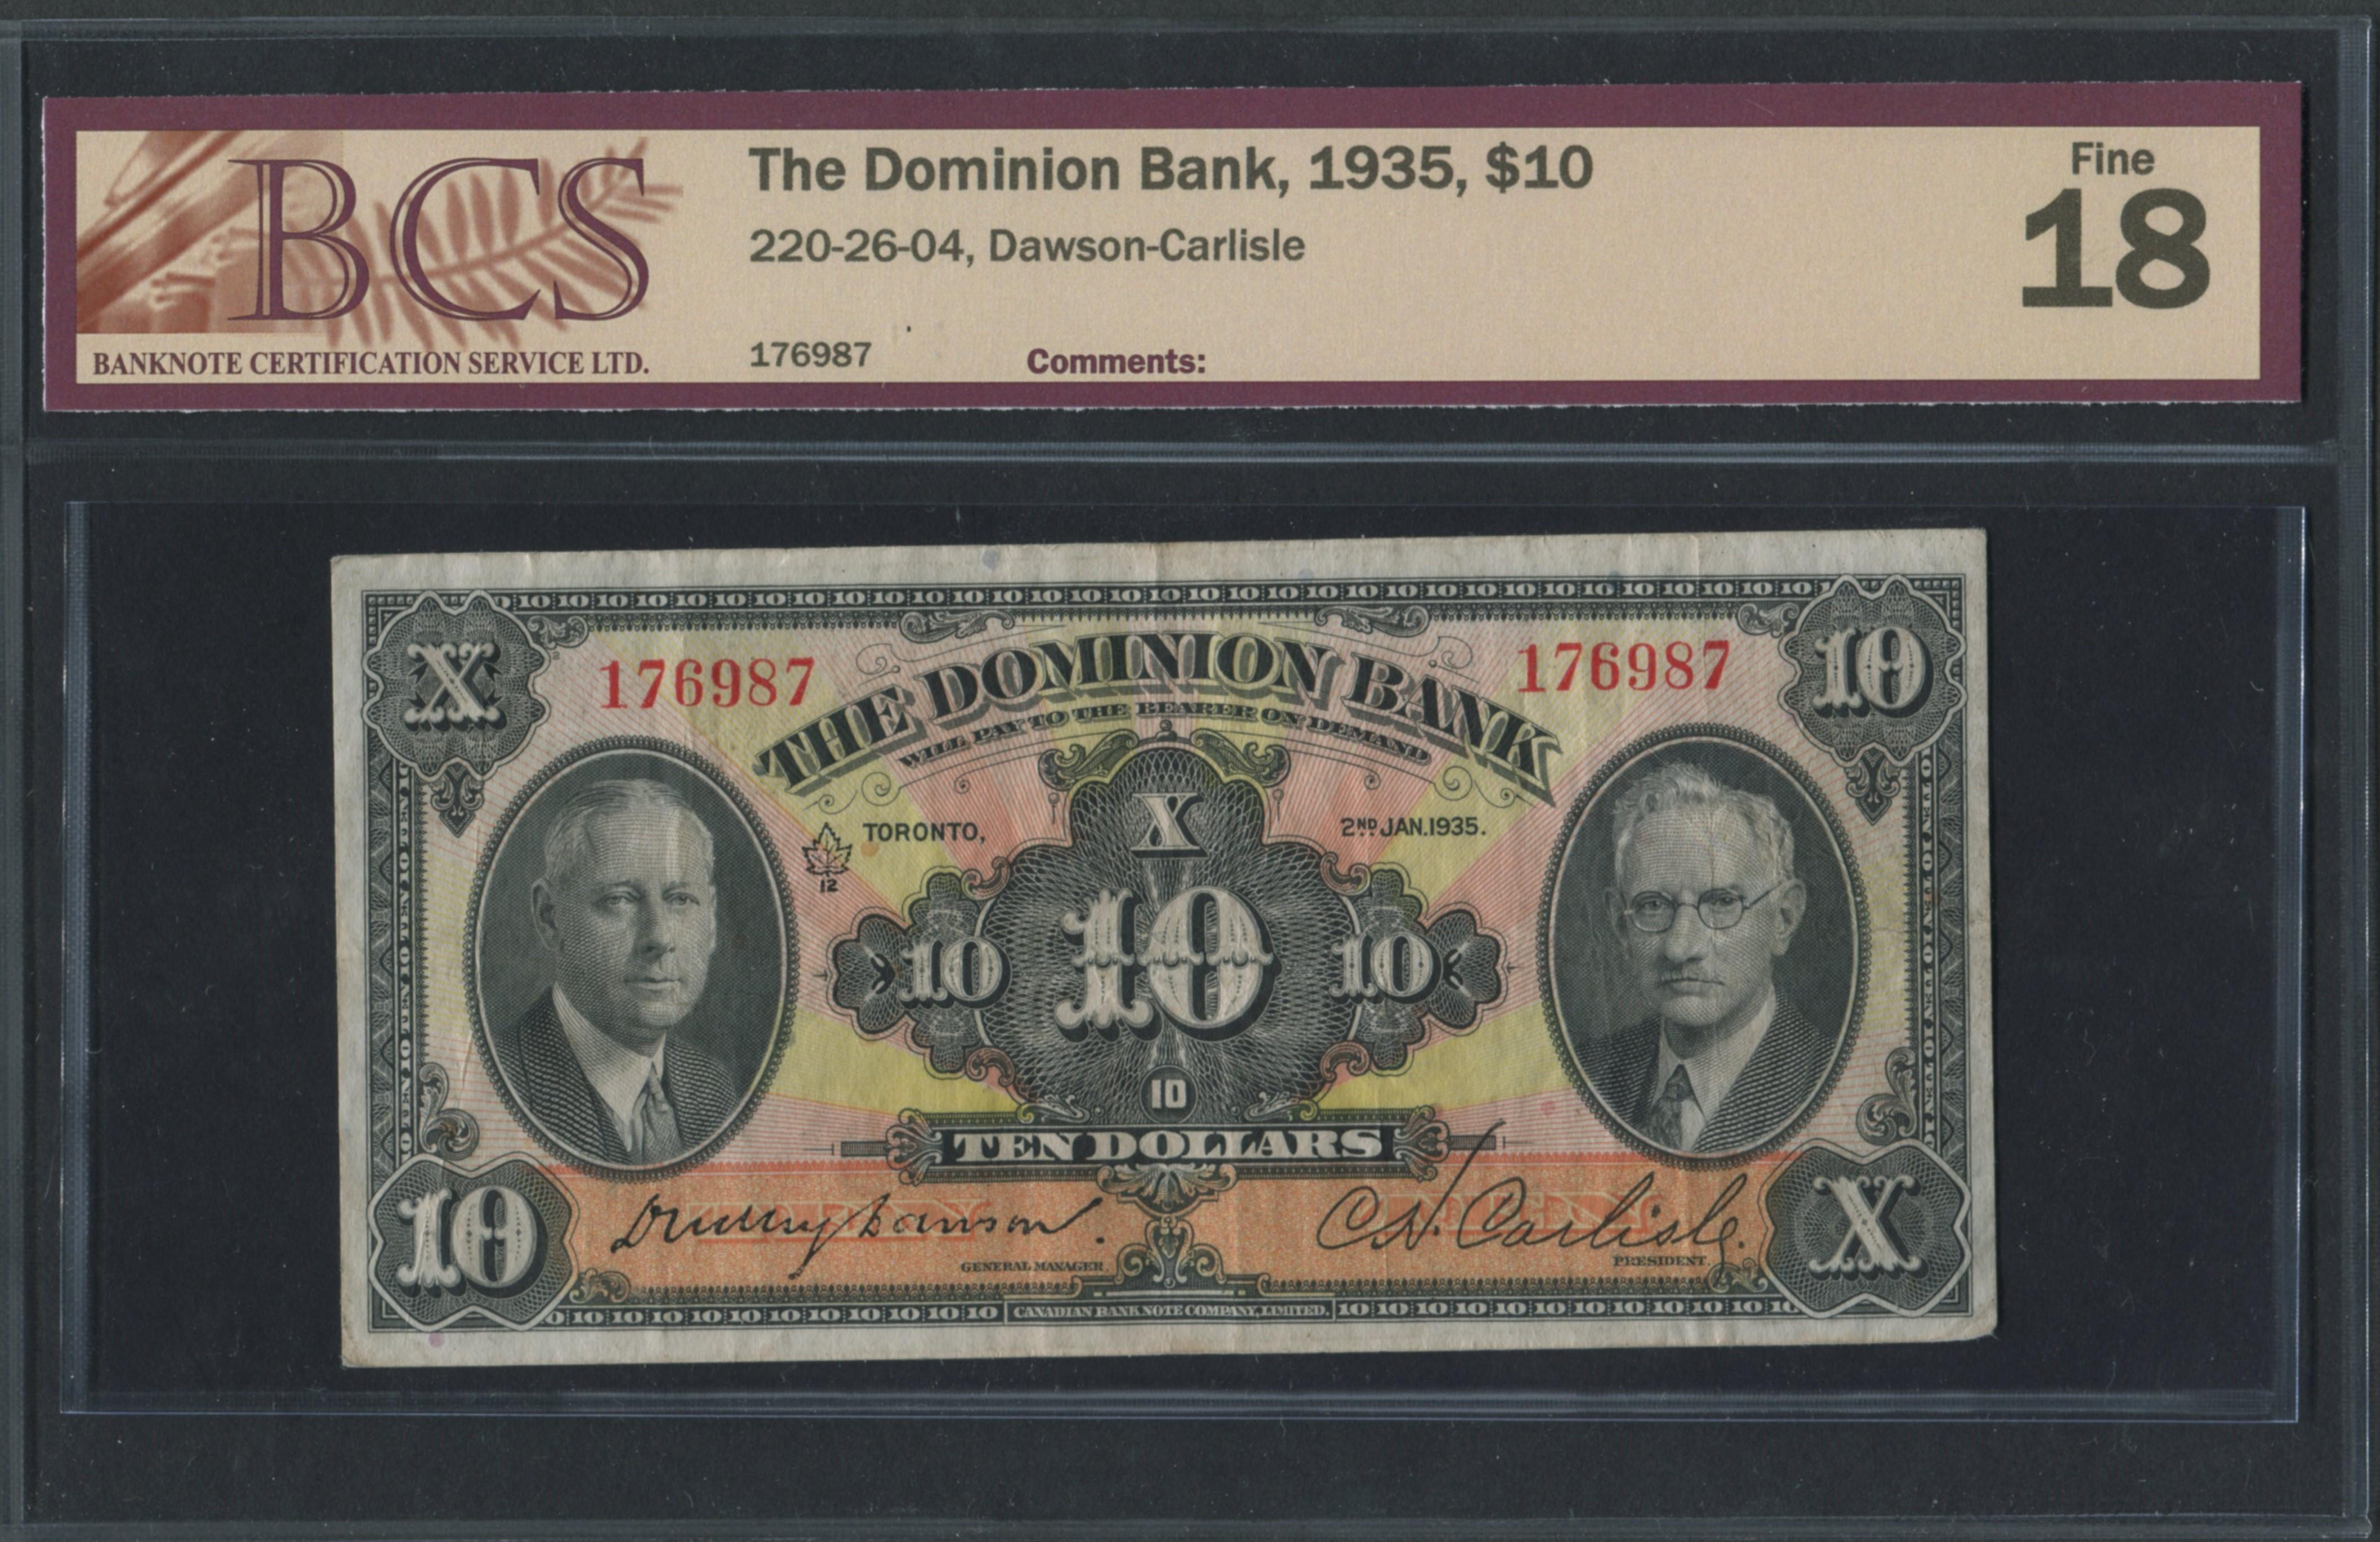 The Dominion Bank 1935 $10 Banknote F18